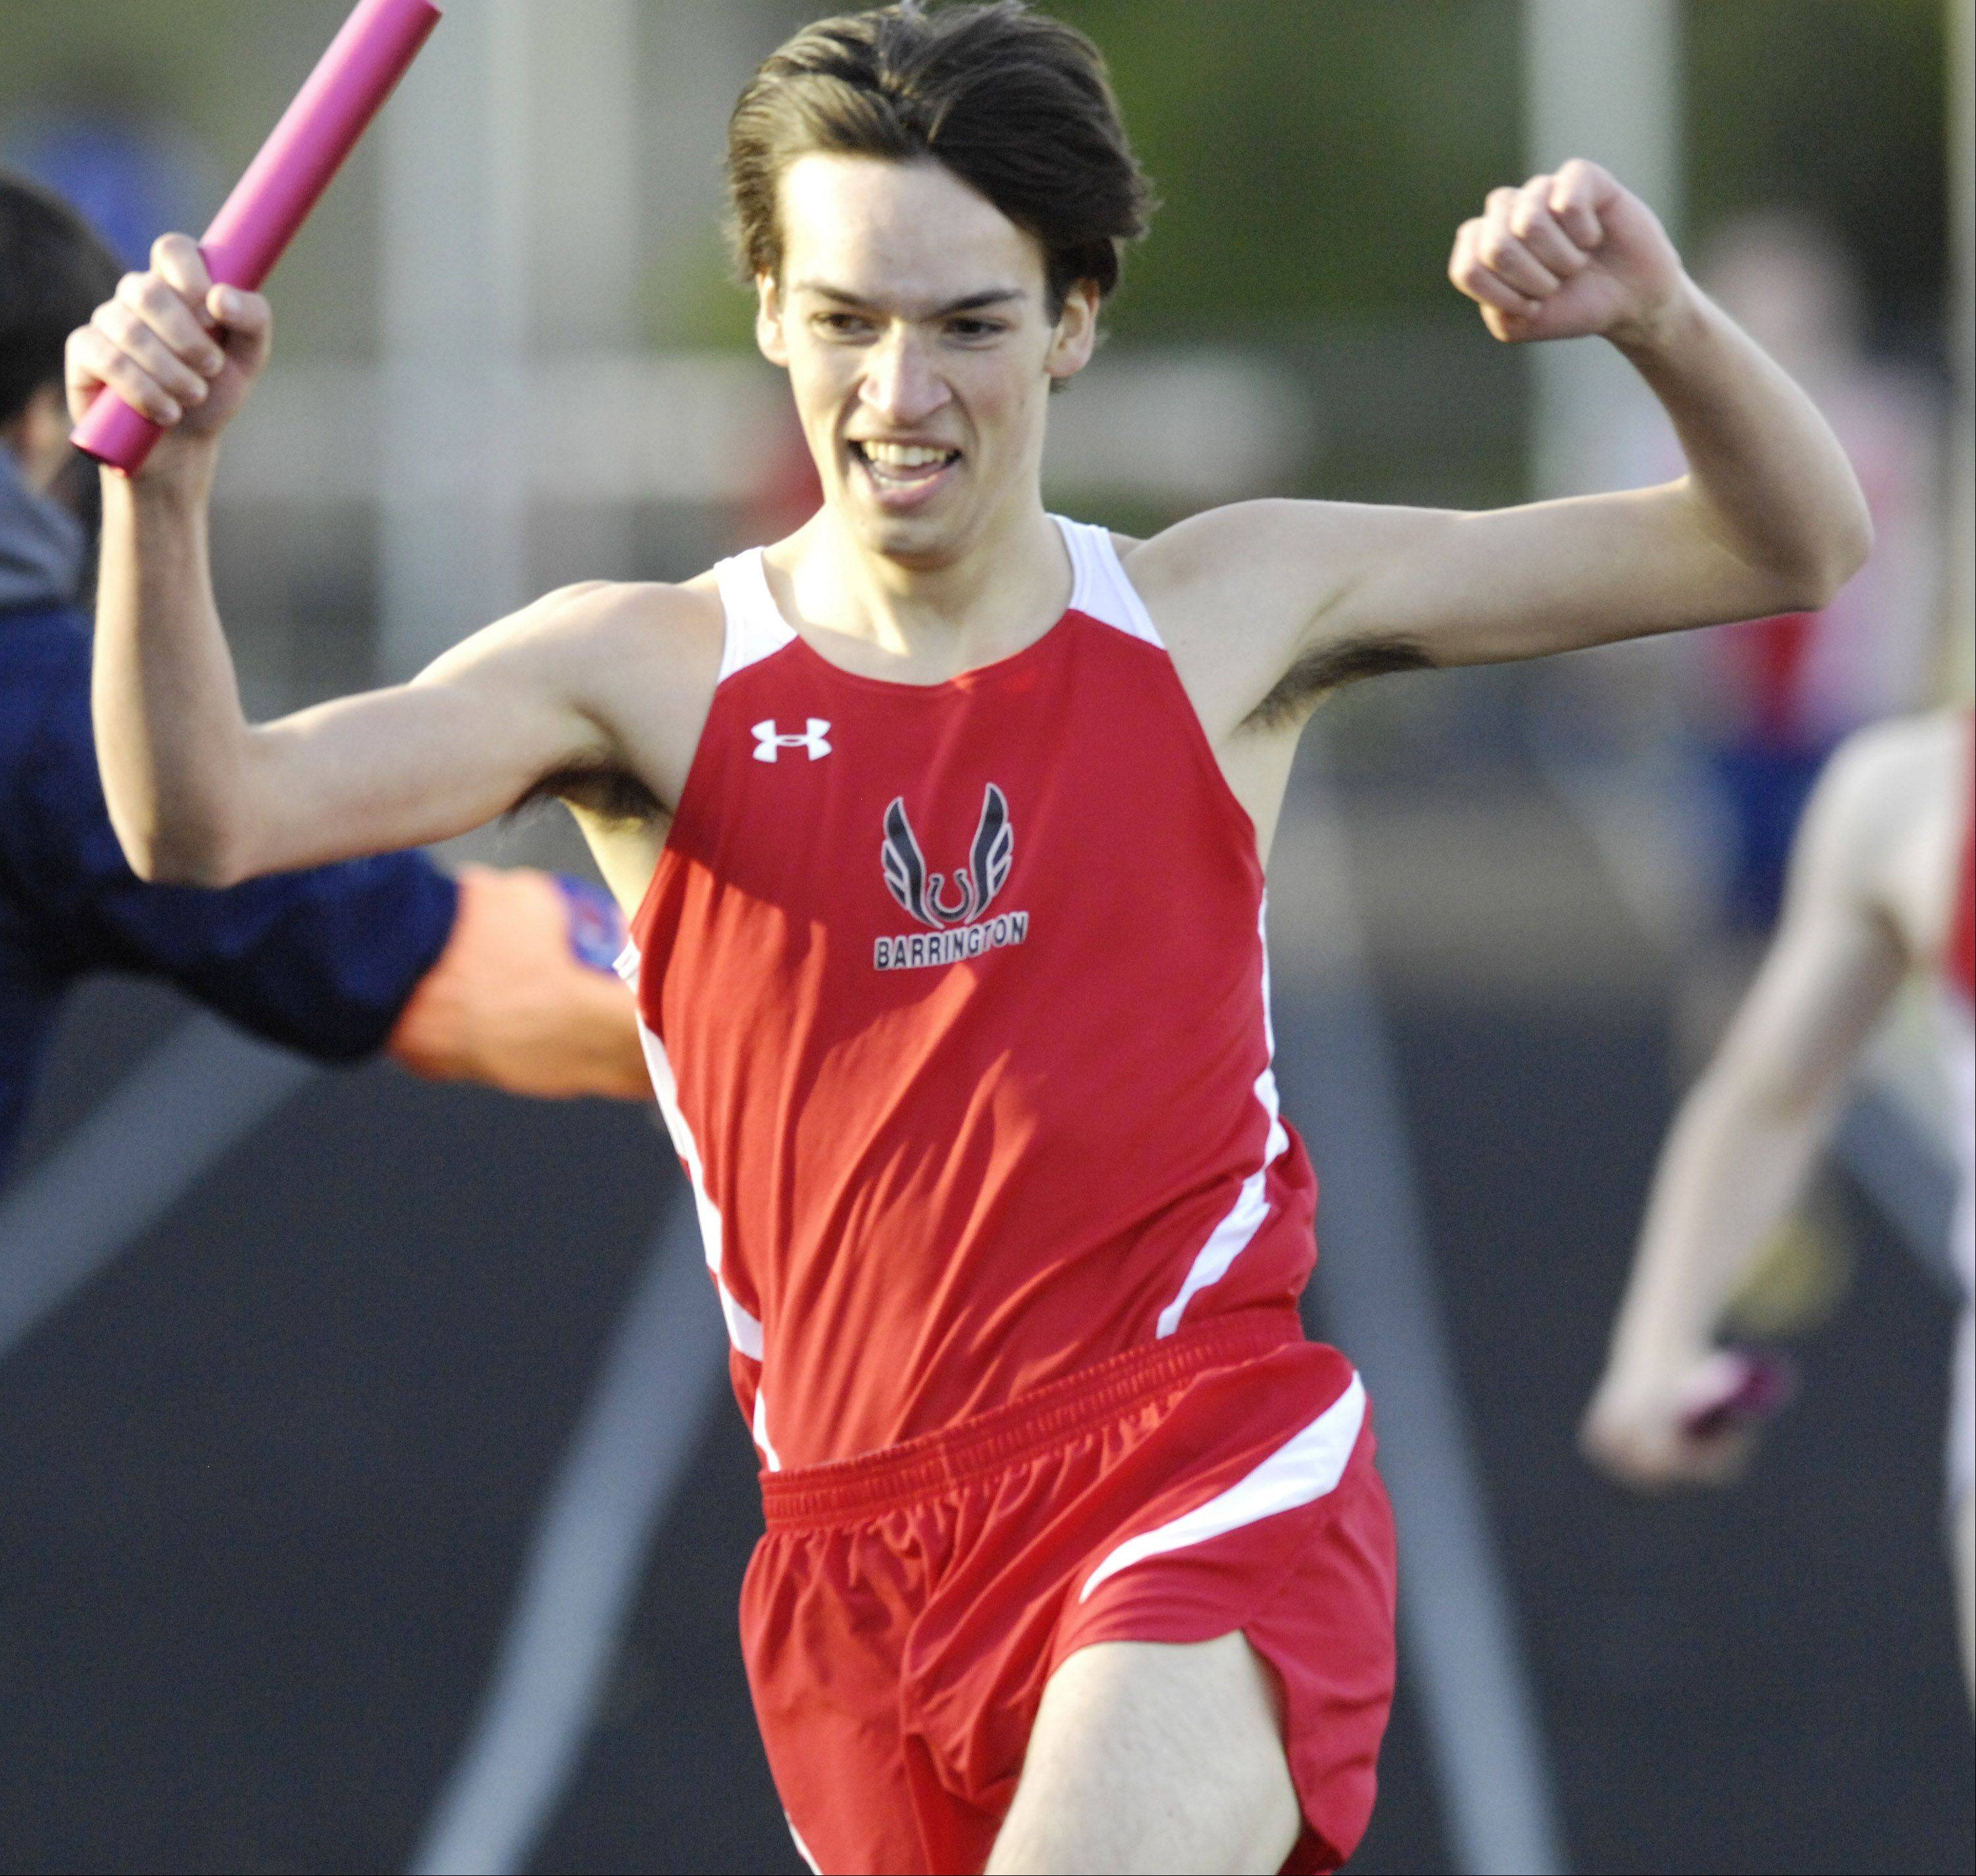 Barrington's Phil Quarfoot celebrates after his team came from behind to win a relay event during Tuesday's Mid-Suburban League boys track meet at Schaumburg.